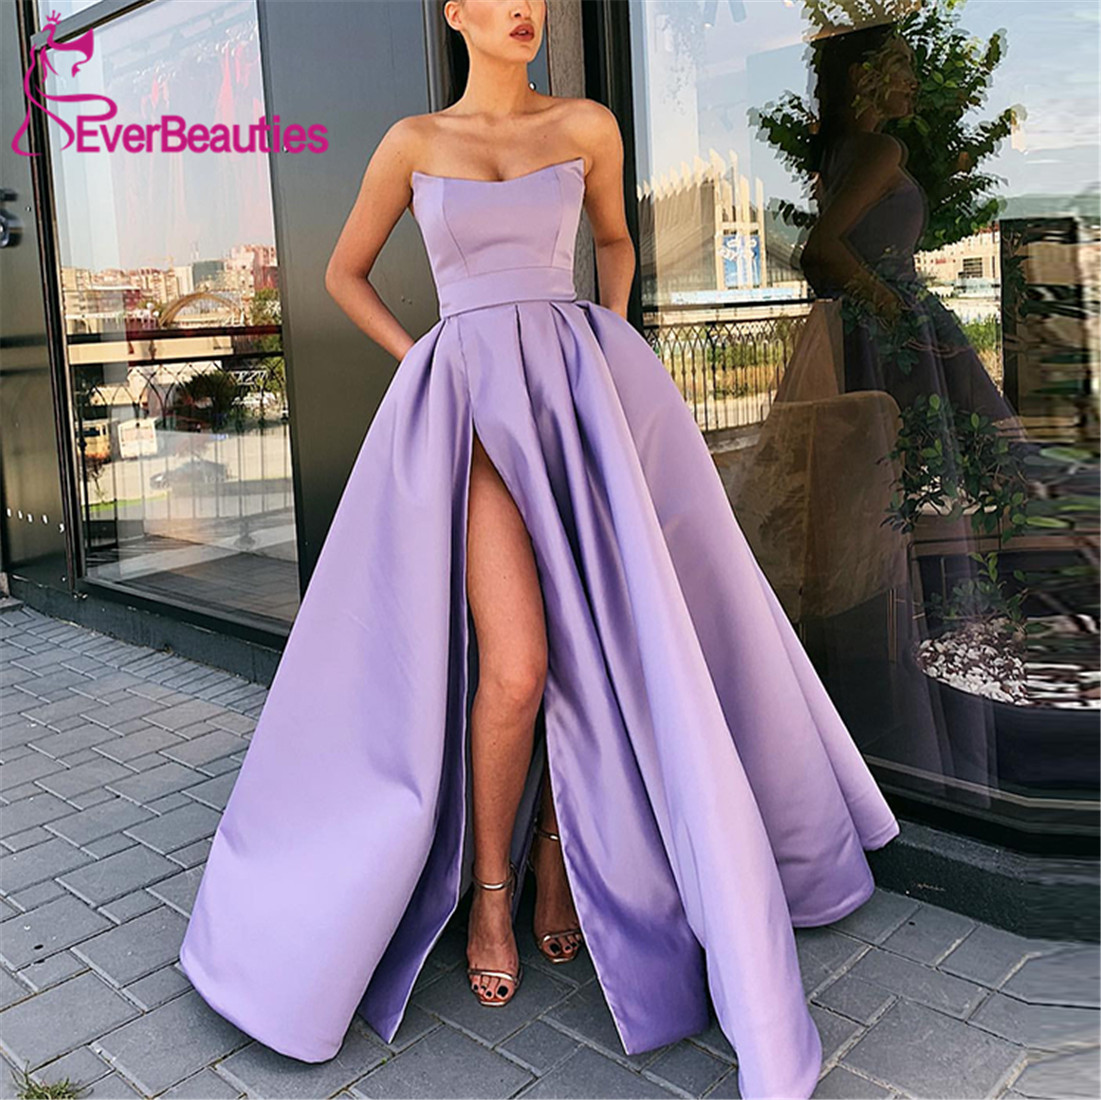 Prom Dresses 2020 With High Slit Satin Purple Vestidos De Gala Evening Party Dresses Prom Gown Robe De Soiree